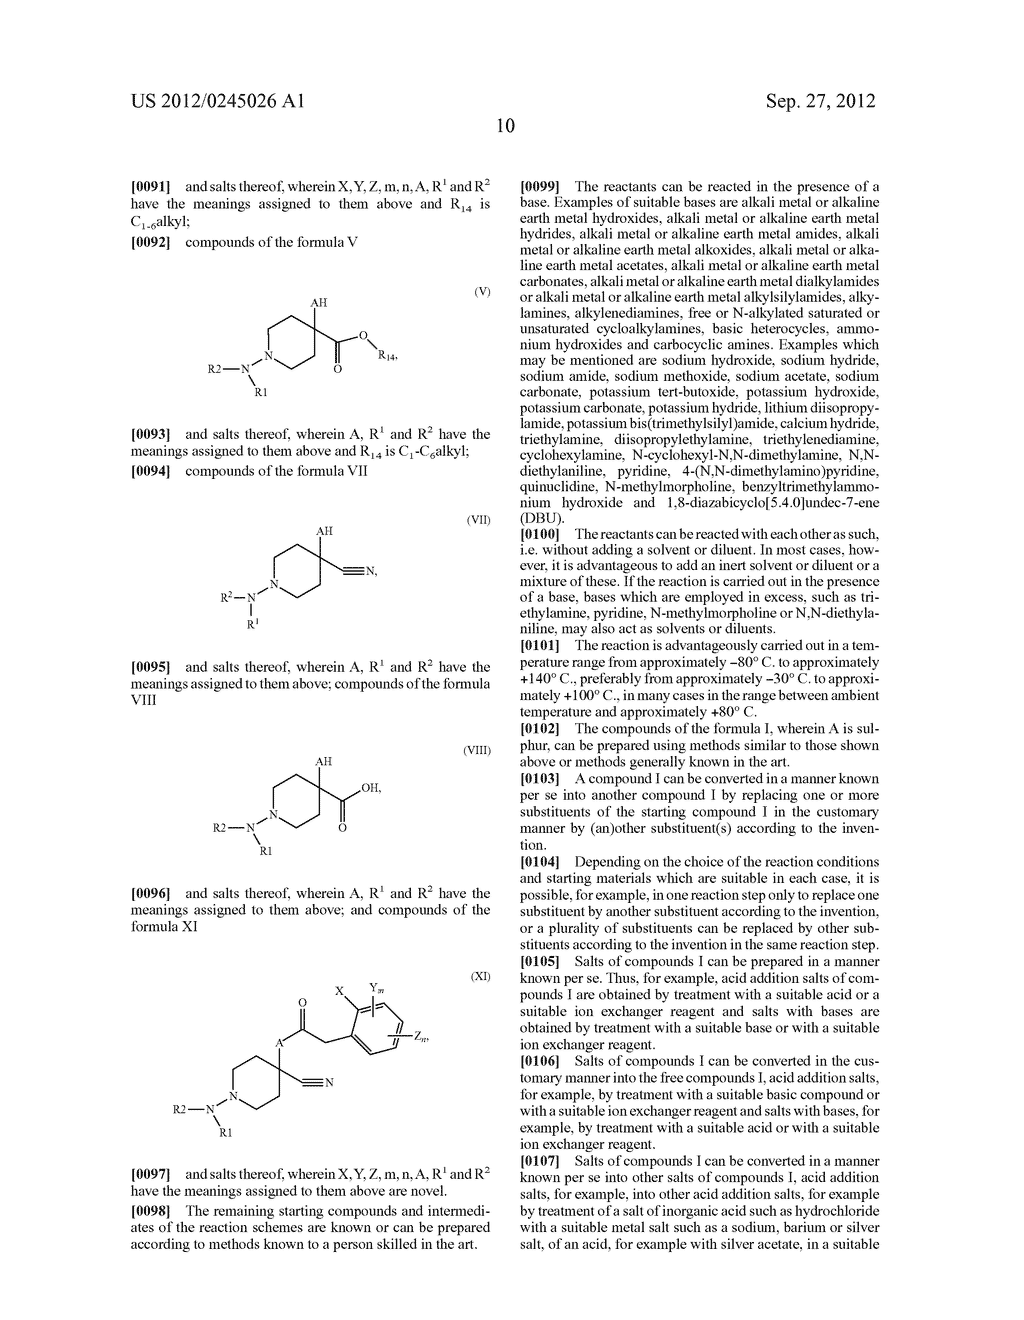 SPIRO FUSED 1-AMINO - PIPERDINE PYRROLIDINE DIONE DERIVATIVES WITH     PESTICIDAL ACTIVITY - diagram, schematic, and image 11